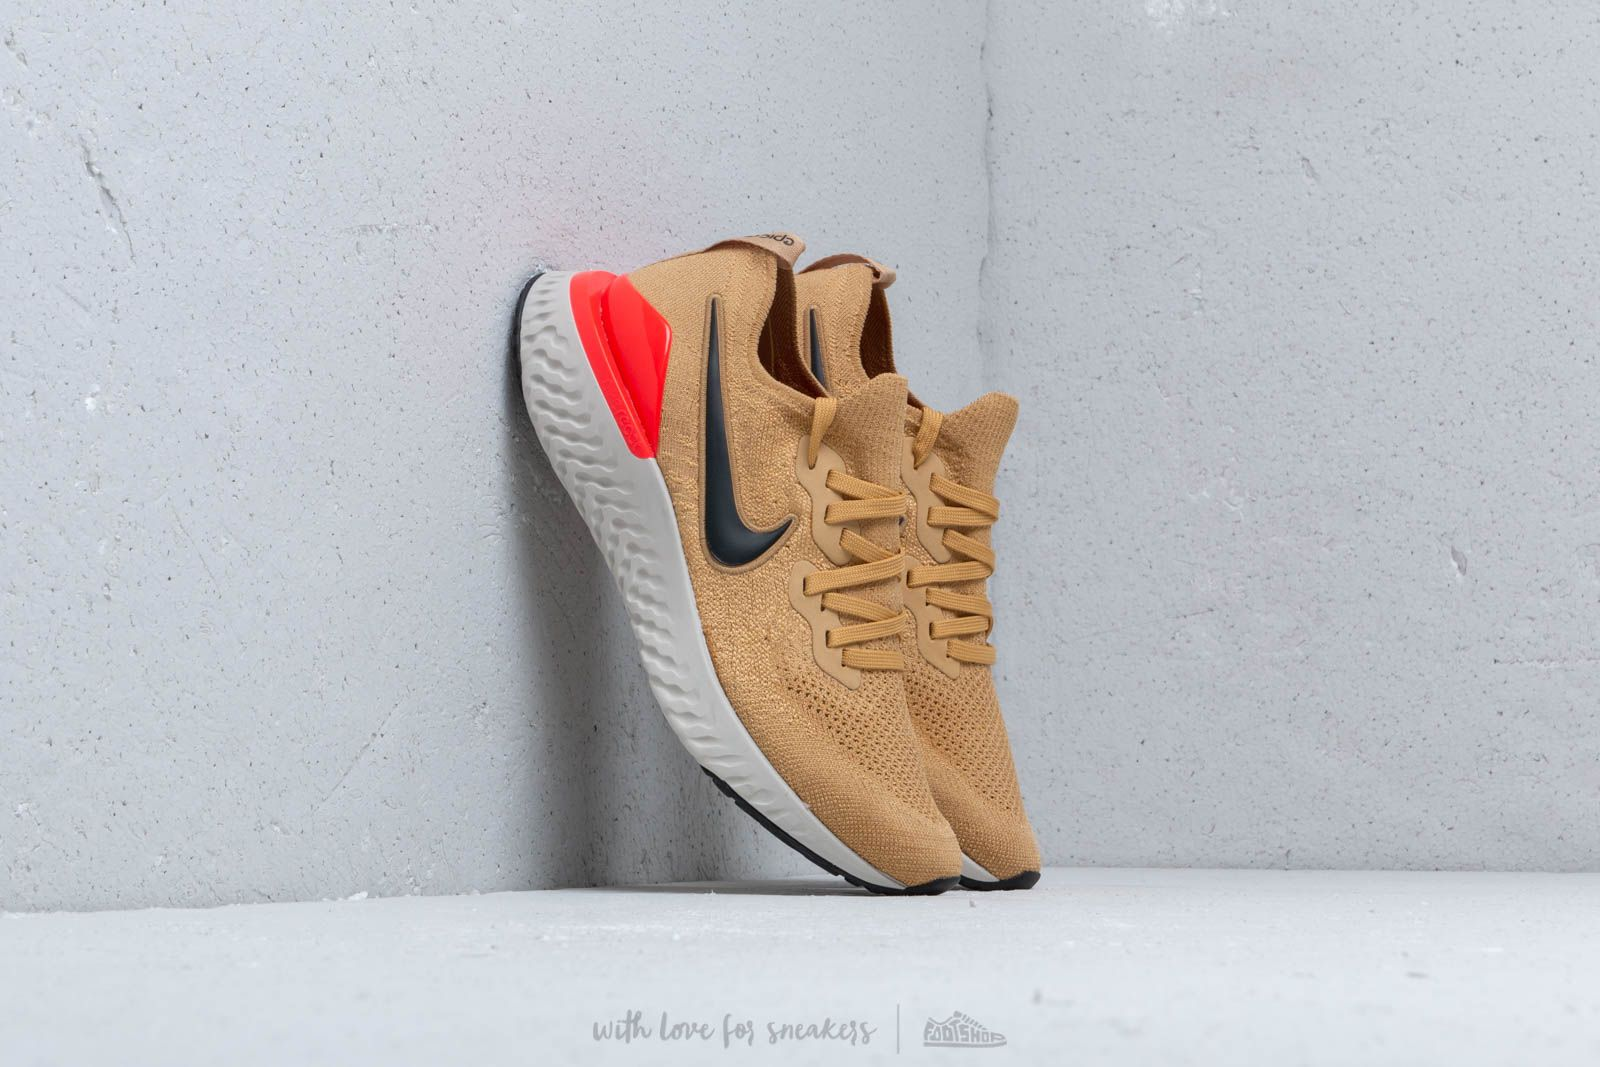 b7d5050c1a523 Nike Epic React Flyknit 2 Club Gold  Black-Red Orbit za skvělou cenu 3